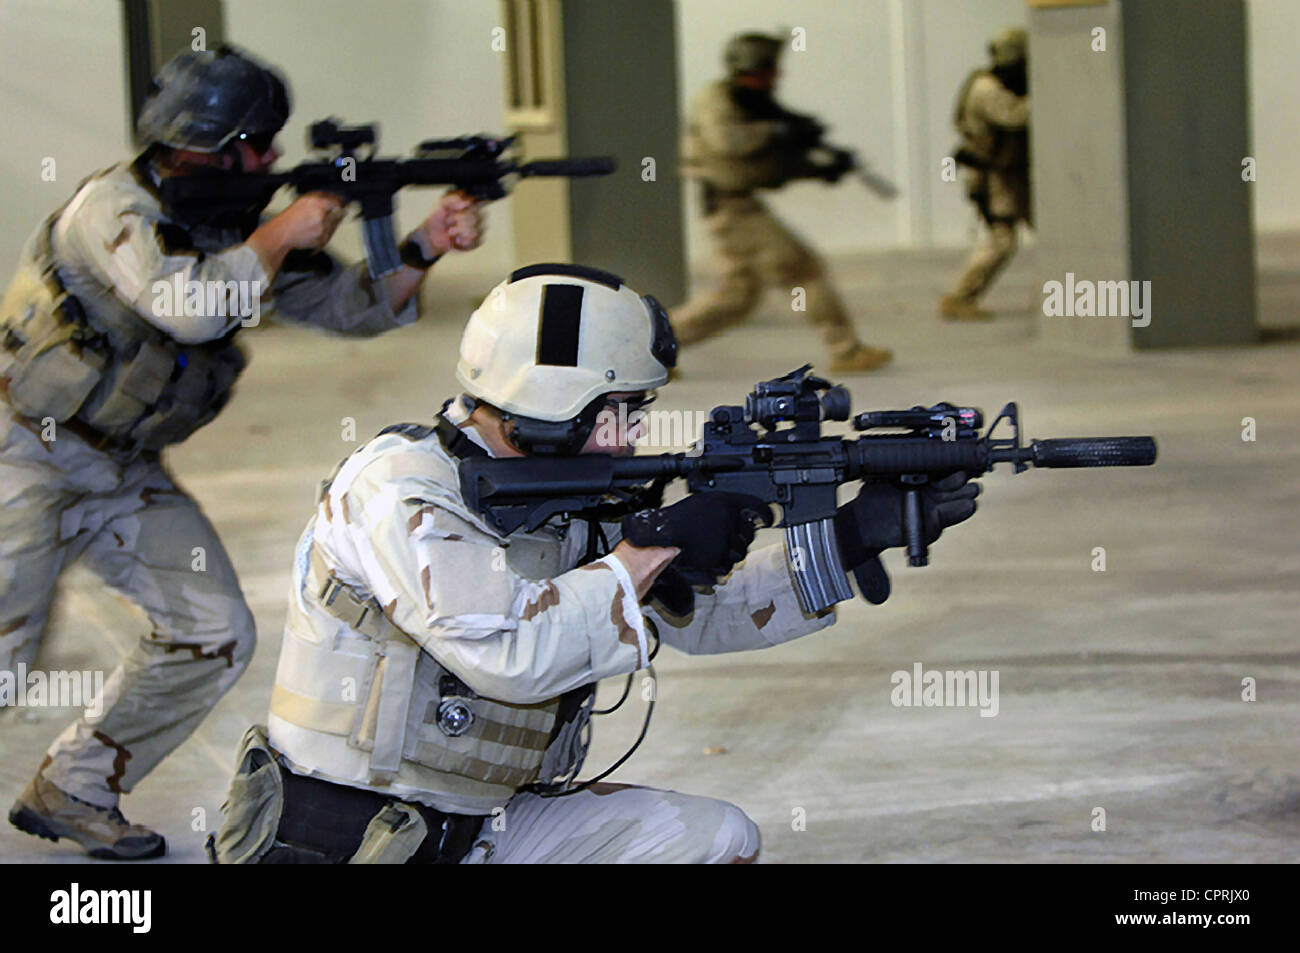 US Navy SEALs practice conduct participate in a tactical warfare training - Stock Image